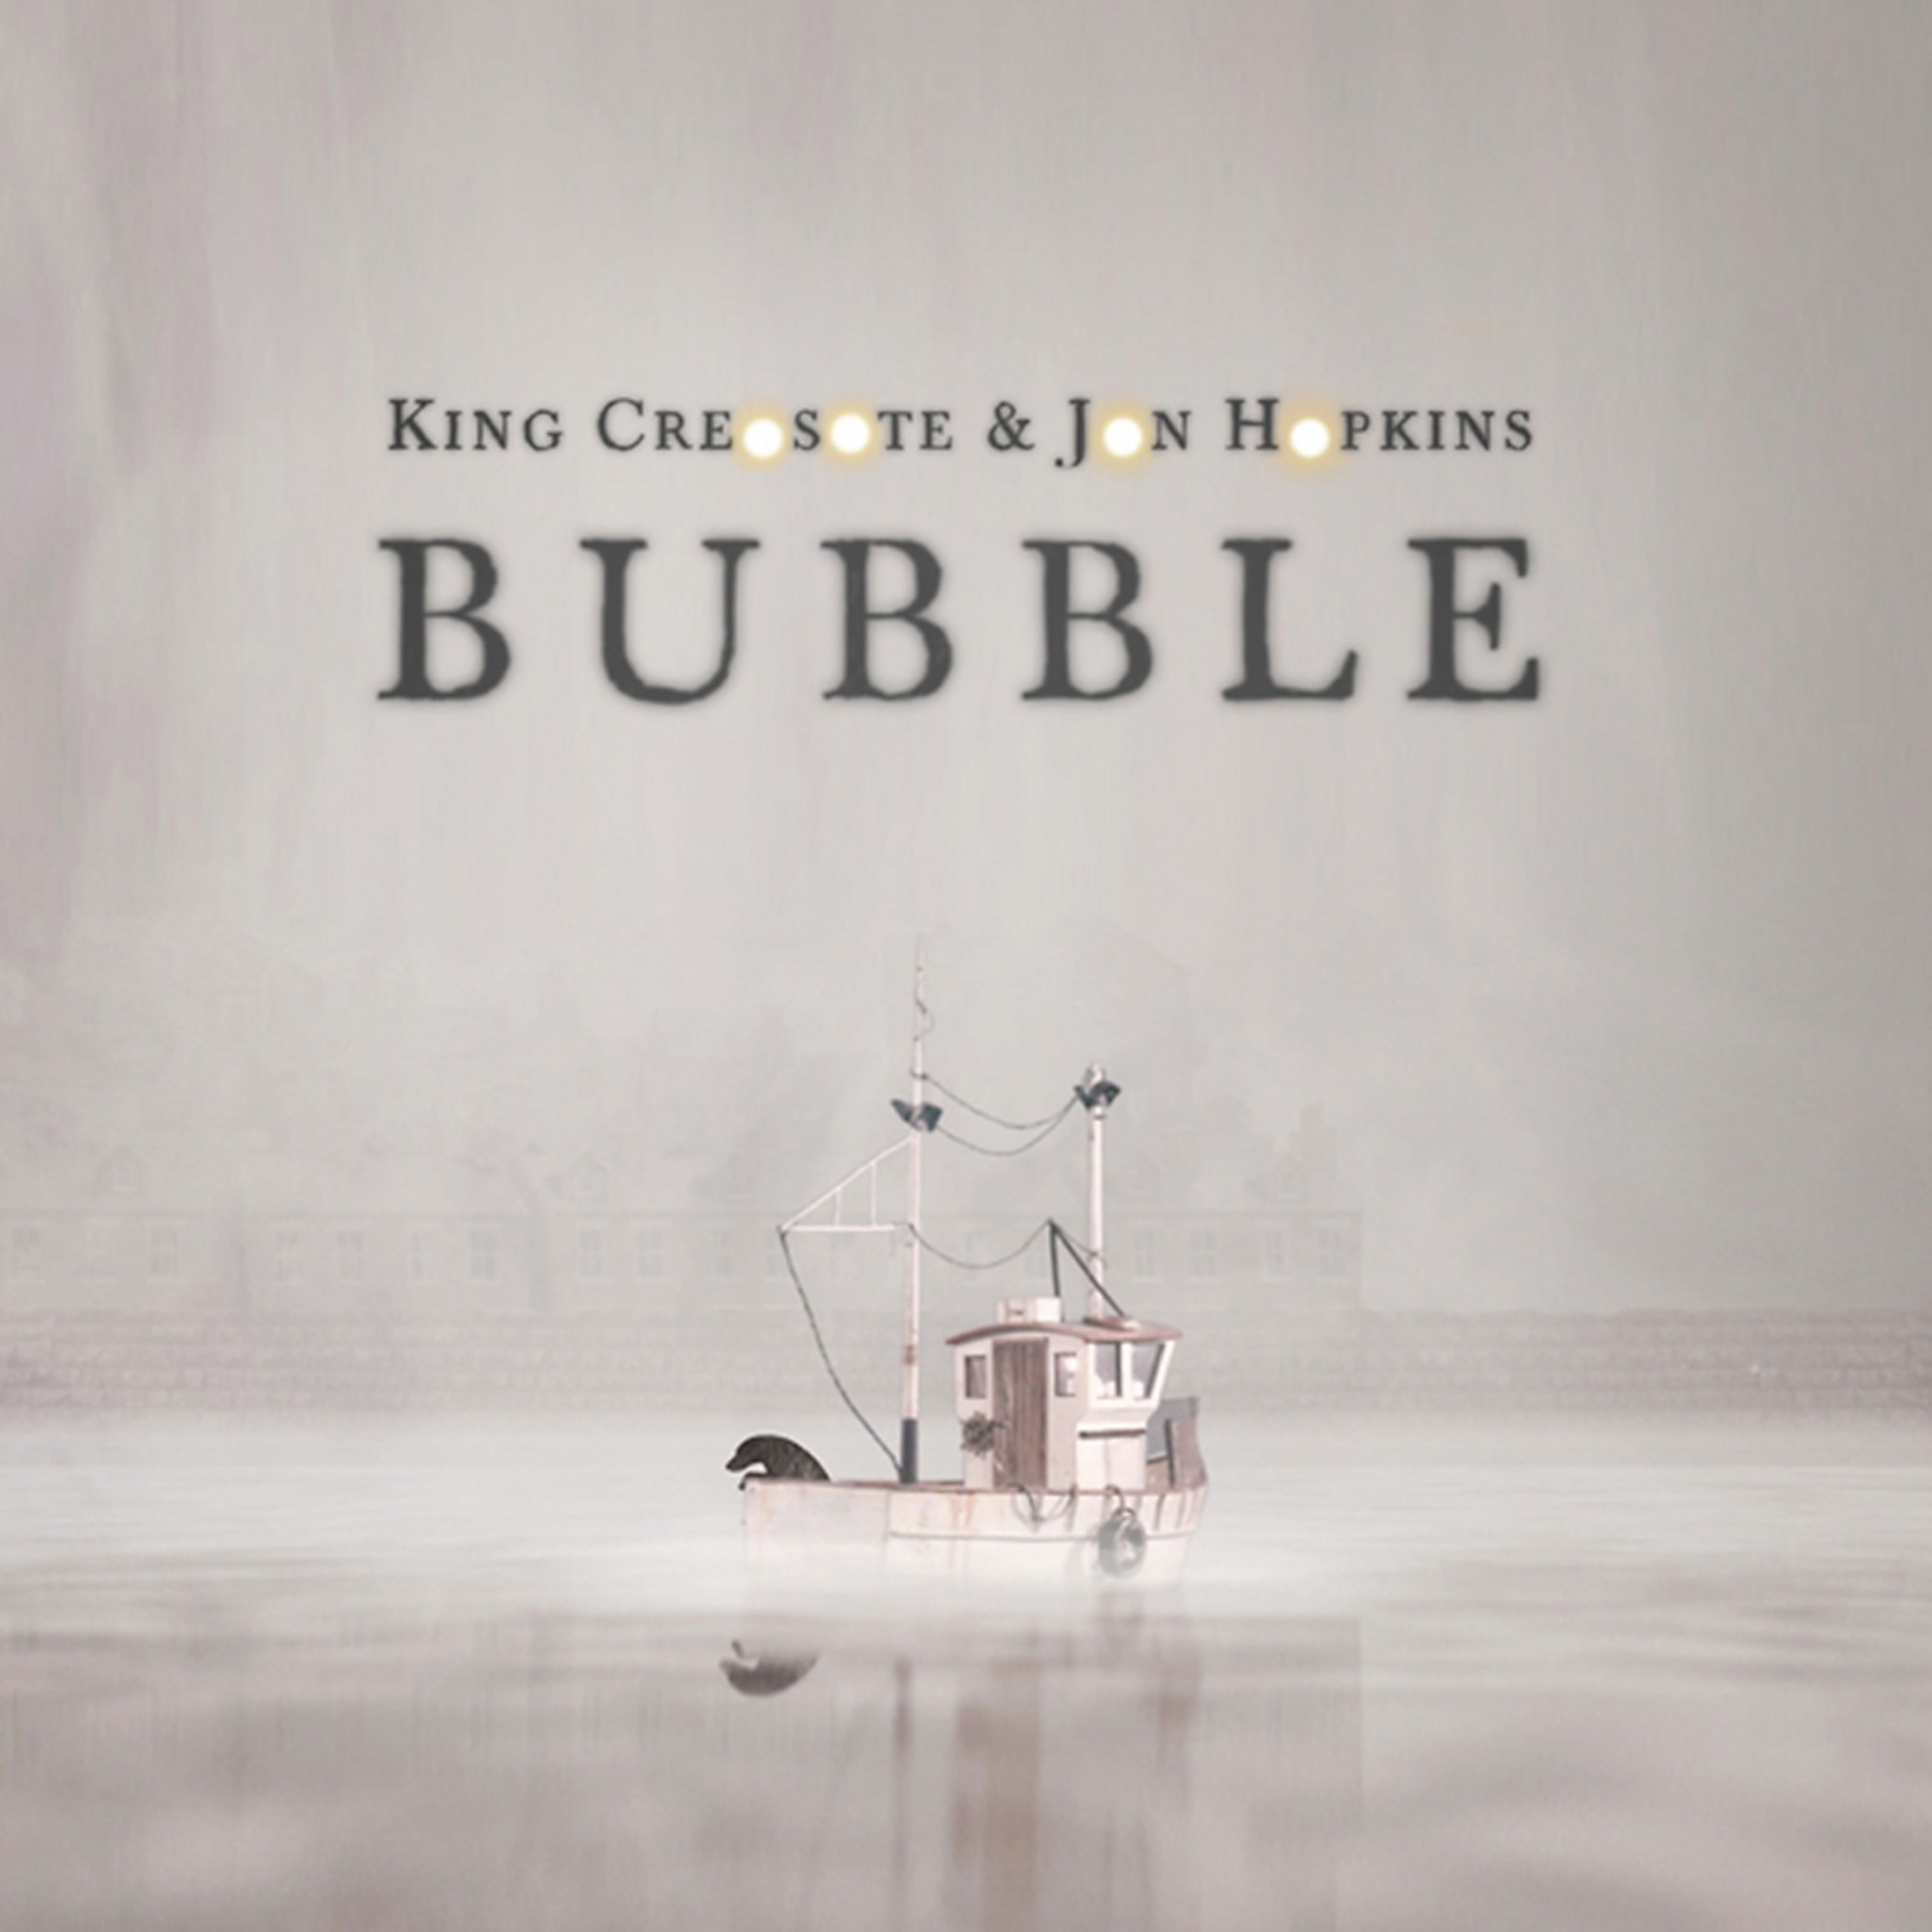 King Creosote Jon Hopkins 'Bubble' artwork by Elliot Dear